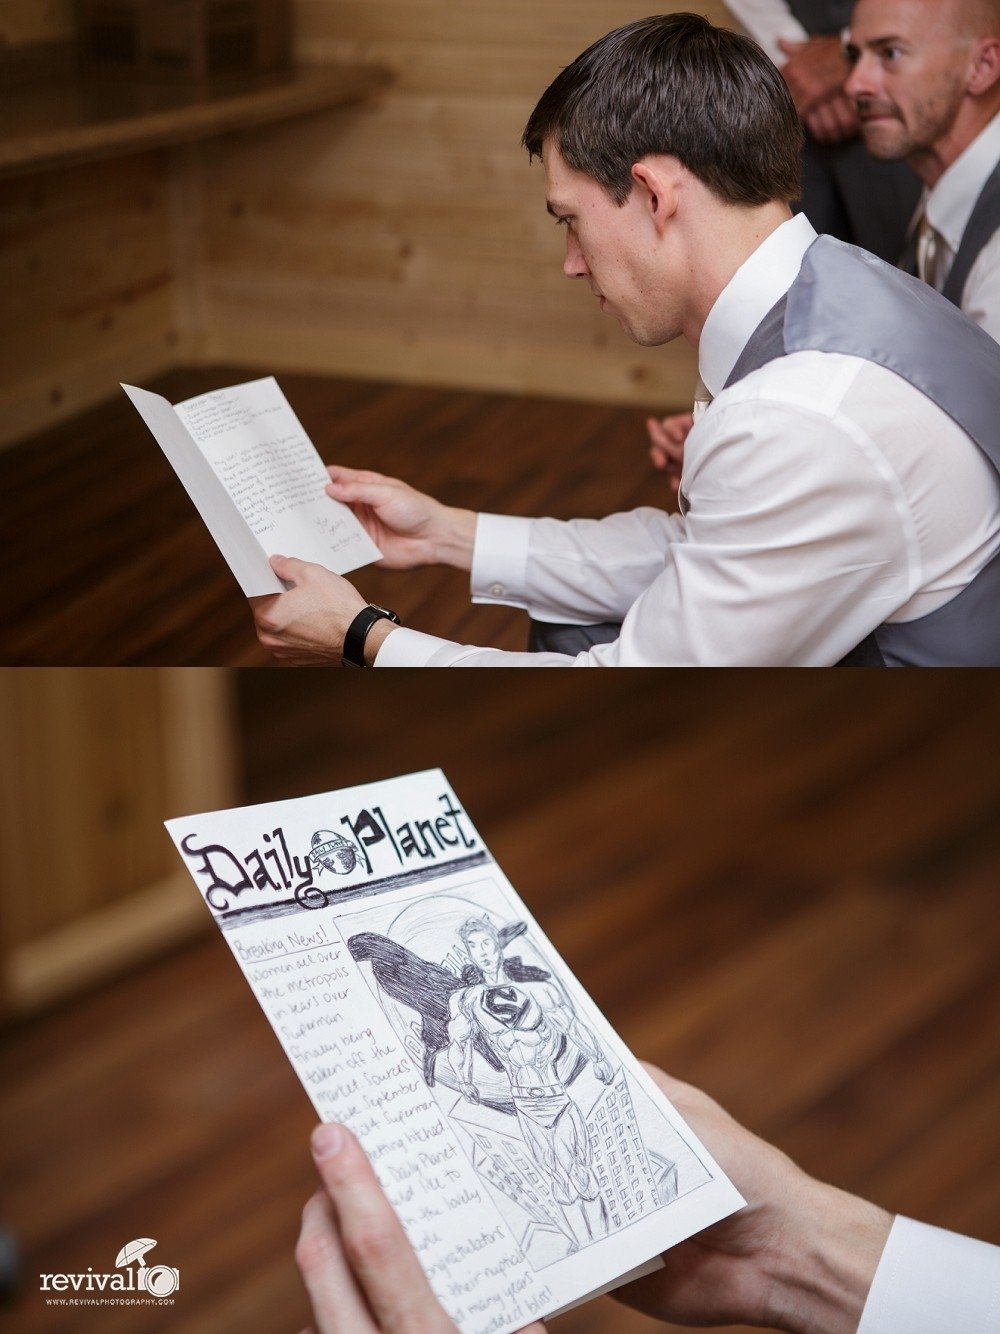 gift ideas for husband on wedding day gallery website gift ideas for